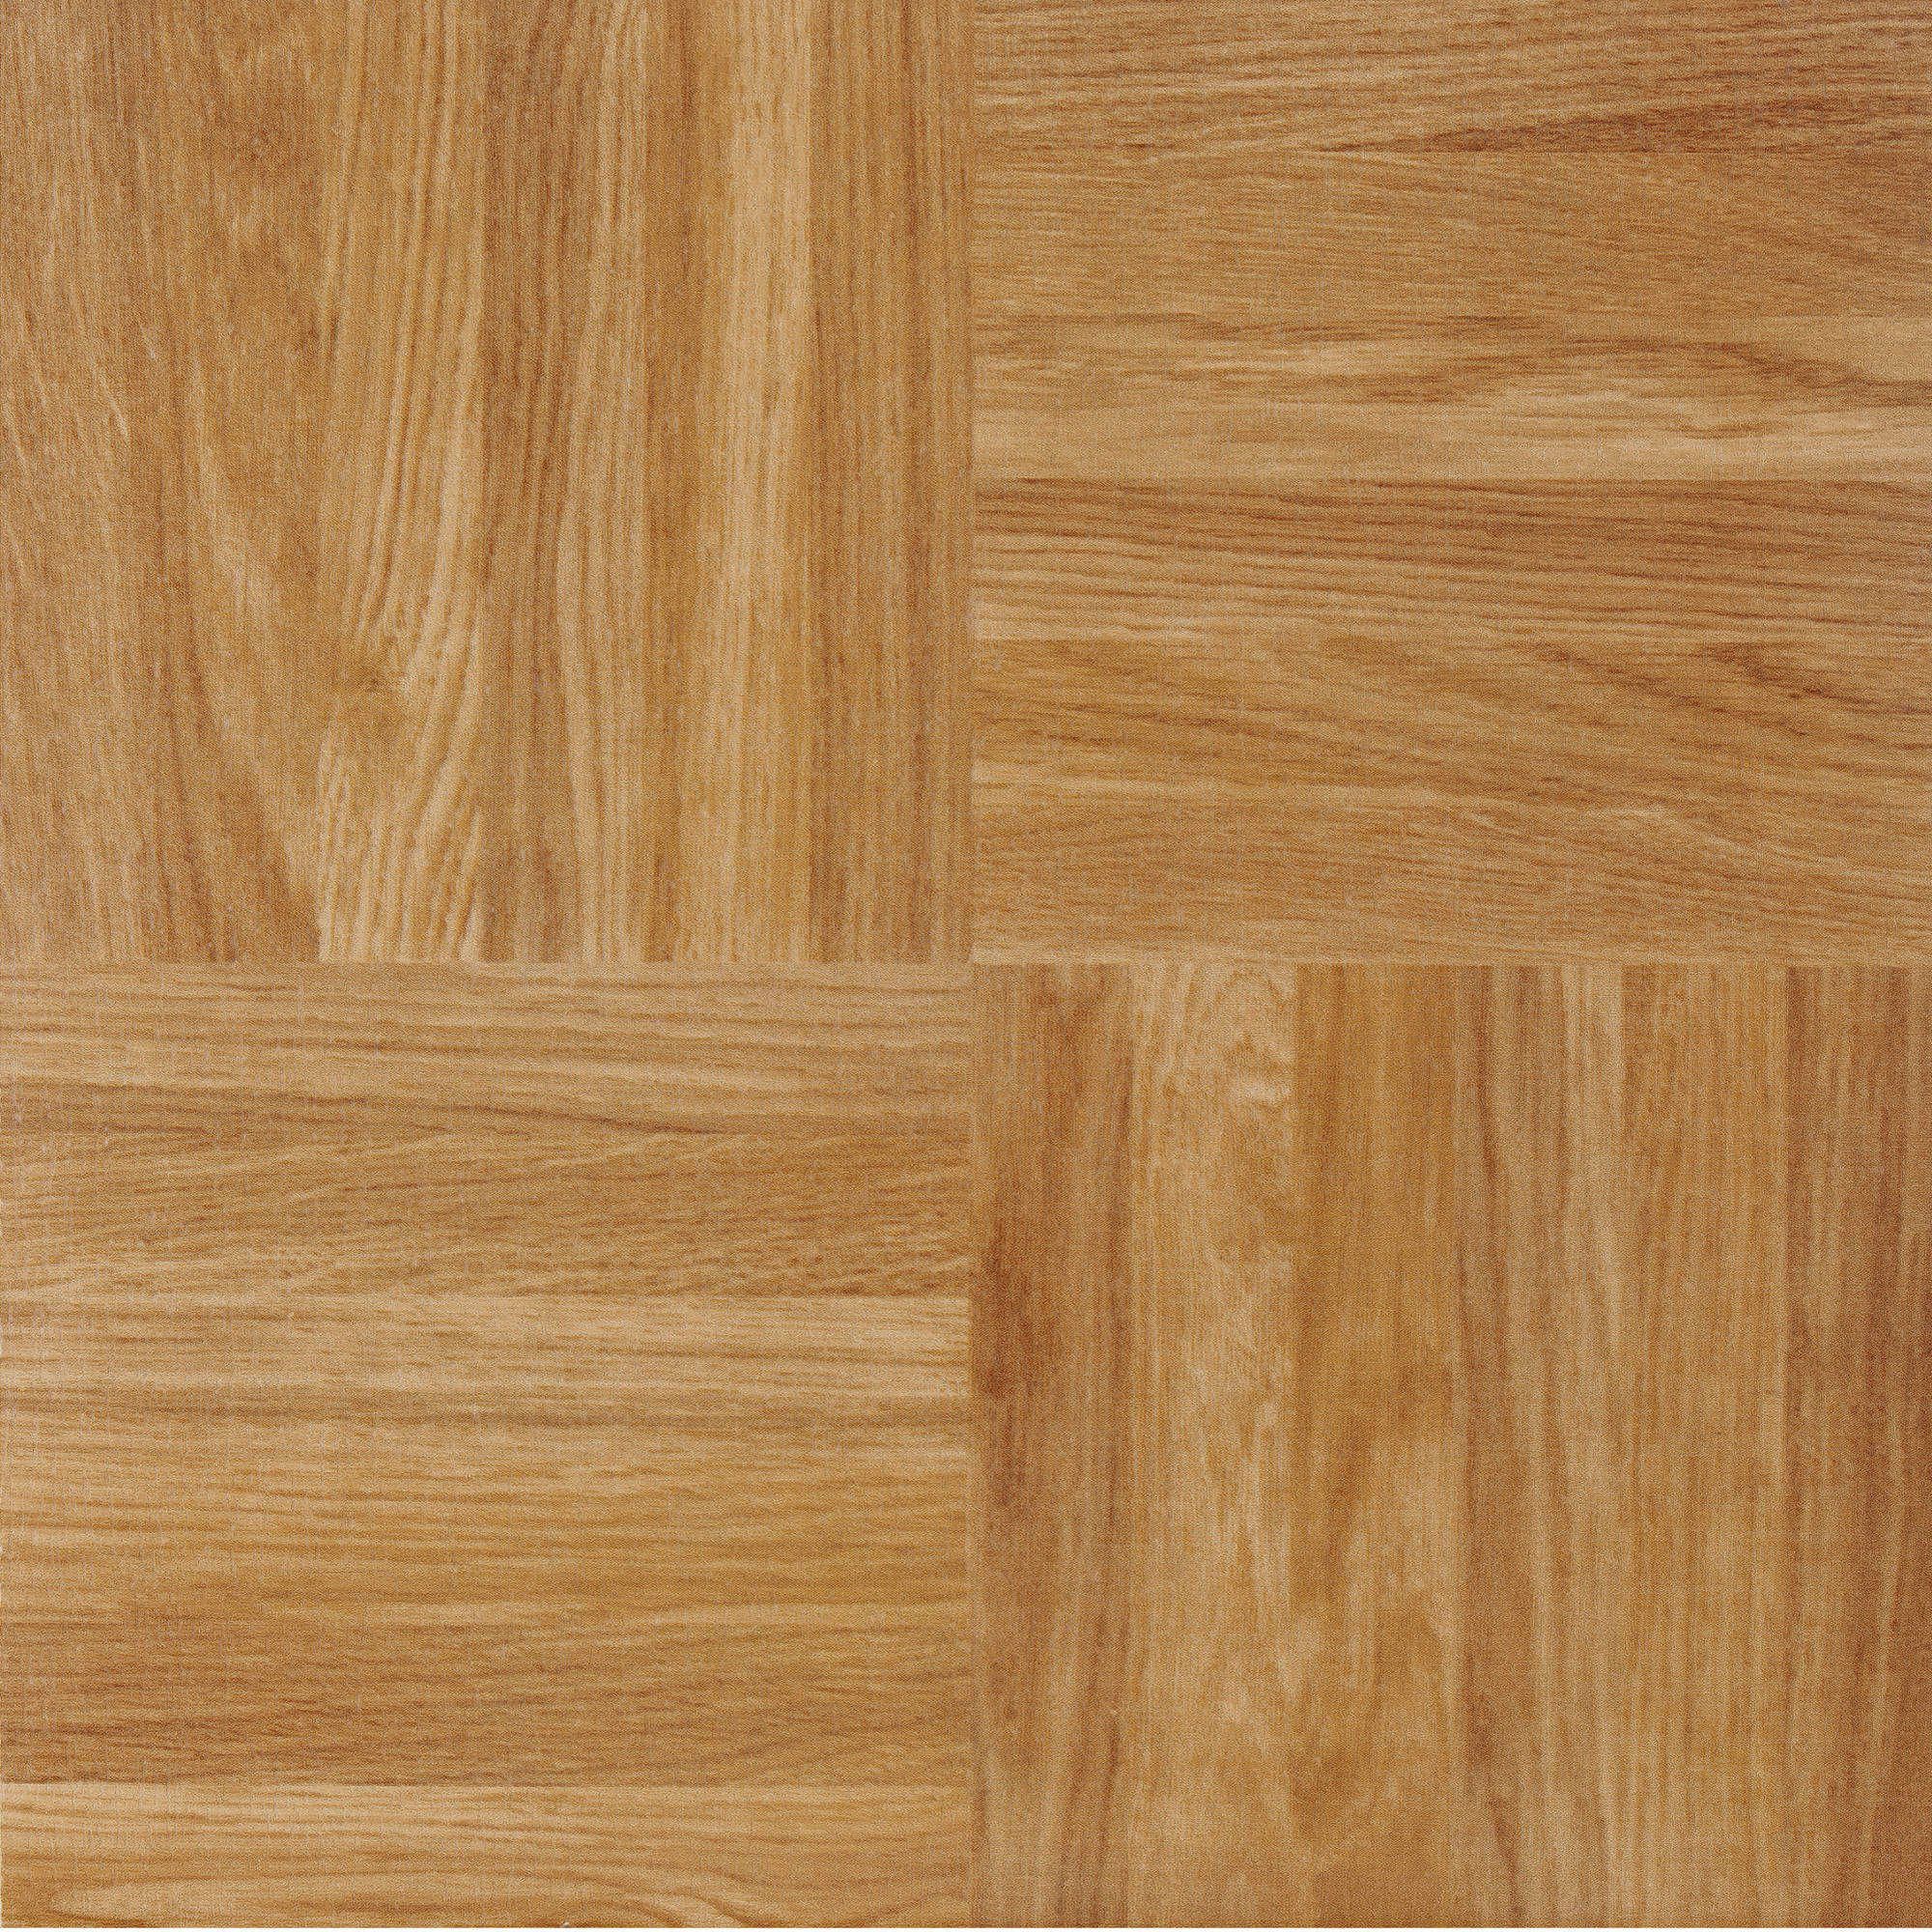 Achim Sterling Square Parquet 12x12 Self Adhesive Vinyl Floor Tile - 20 Tiles/20 Sq.Ft.